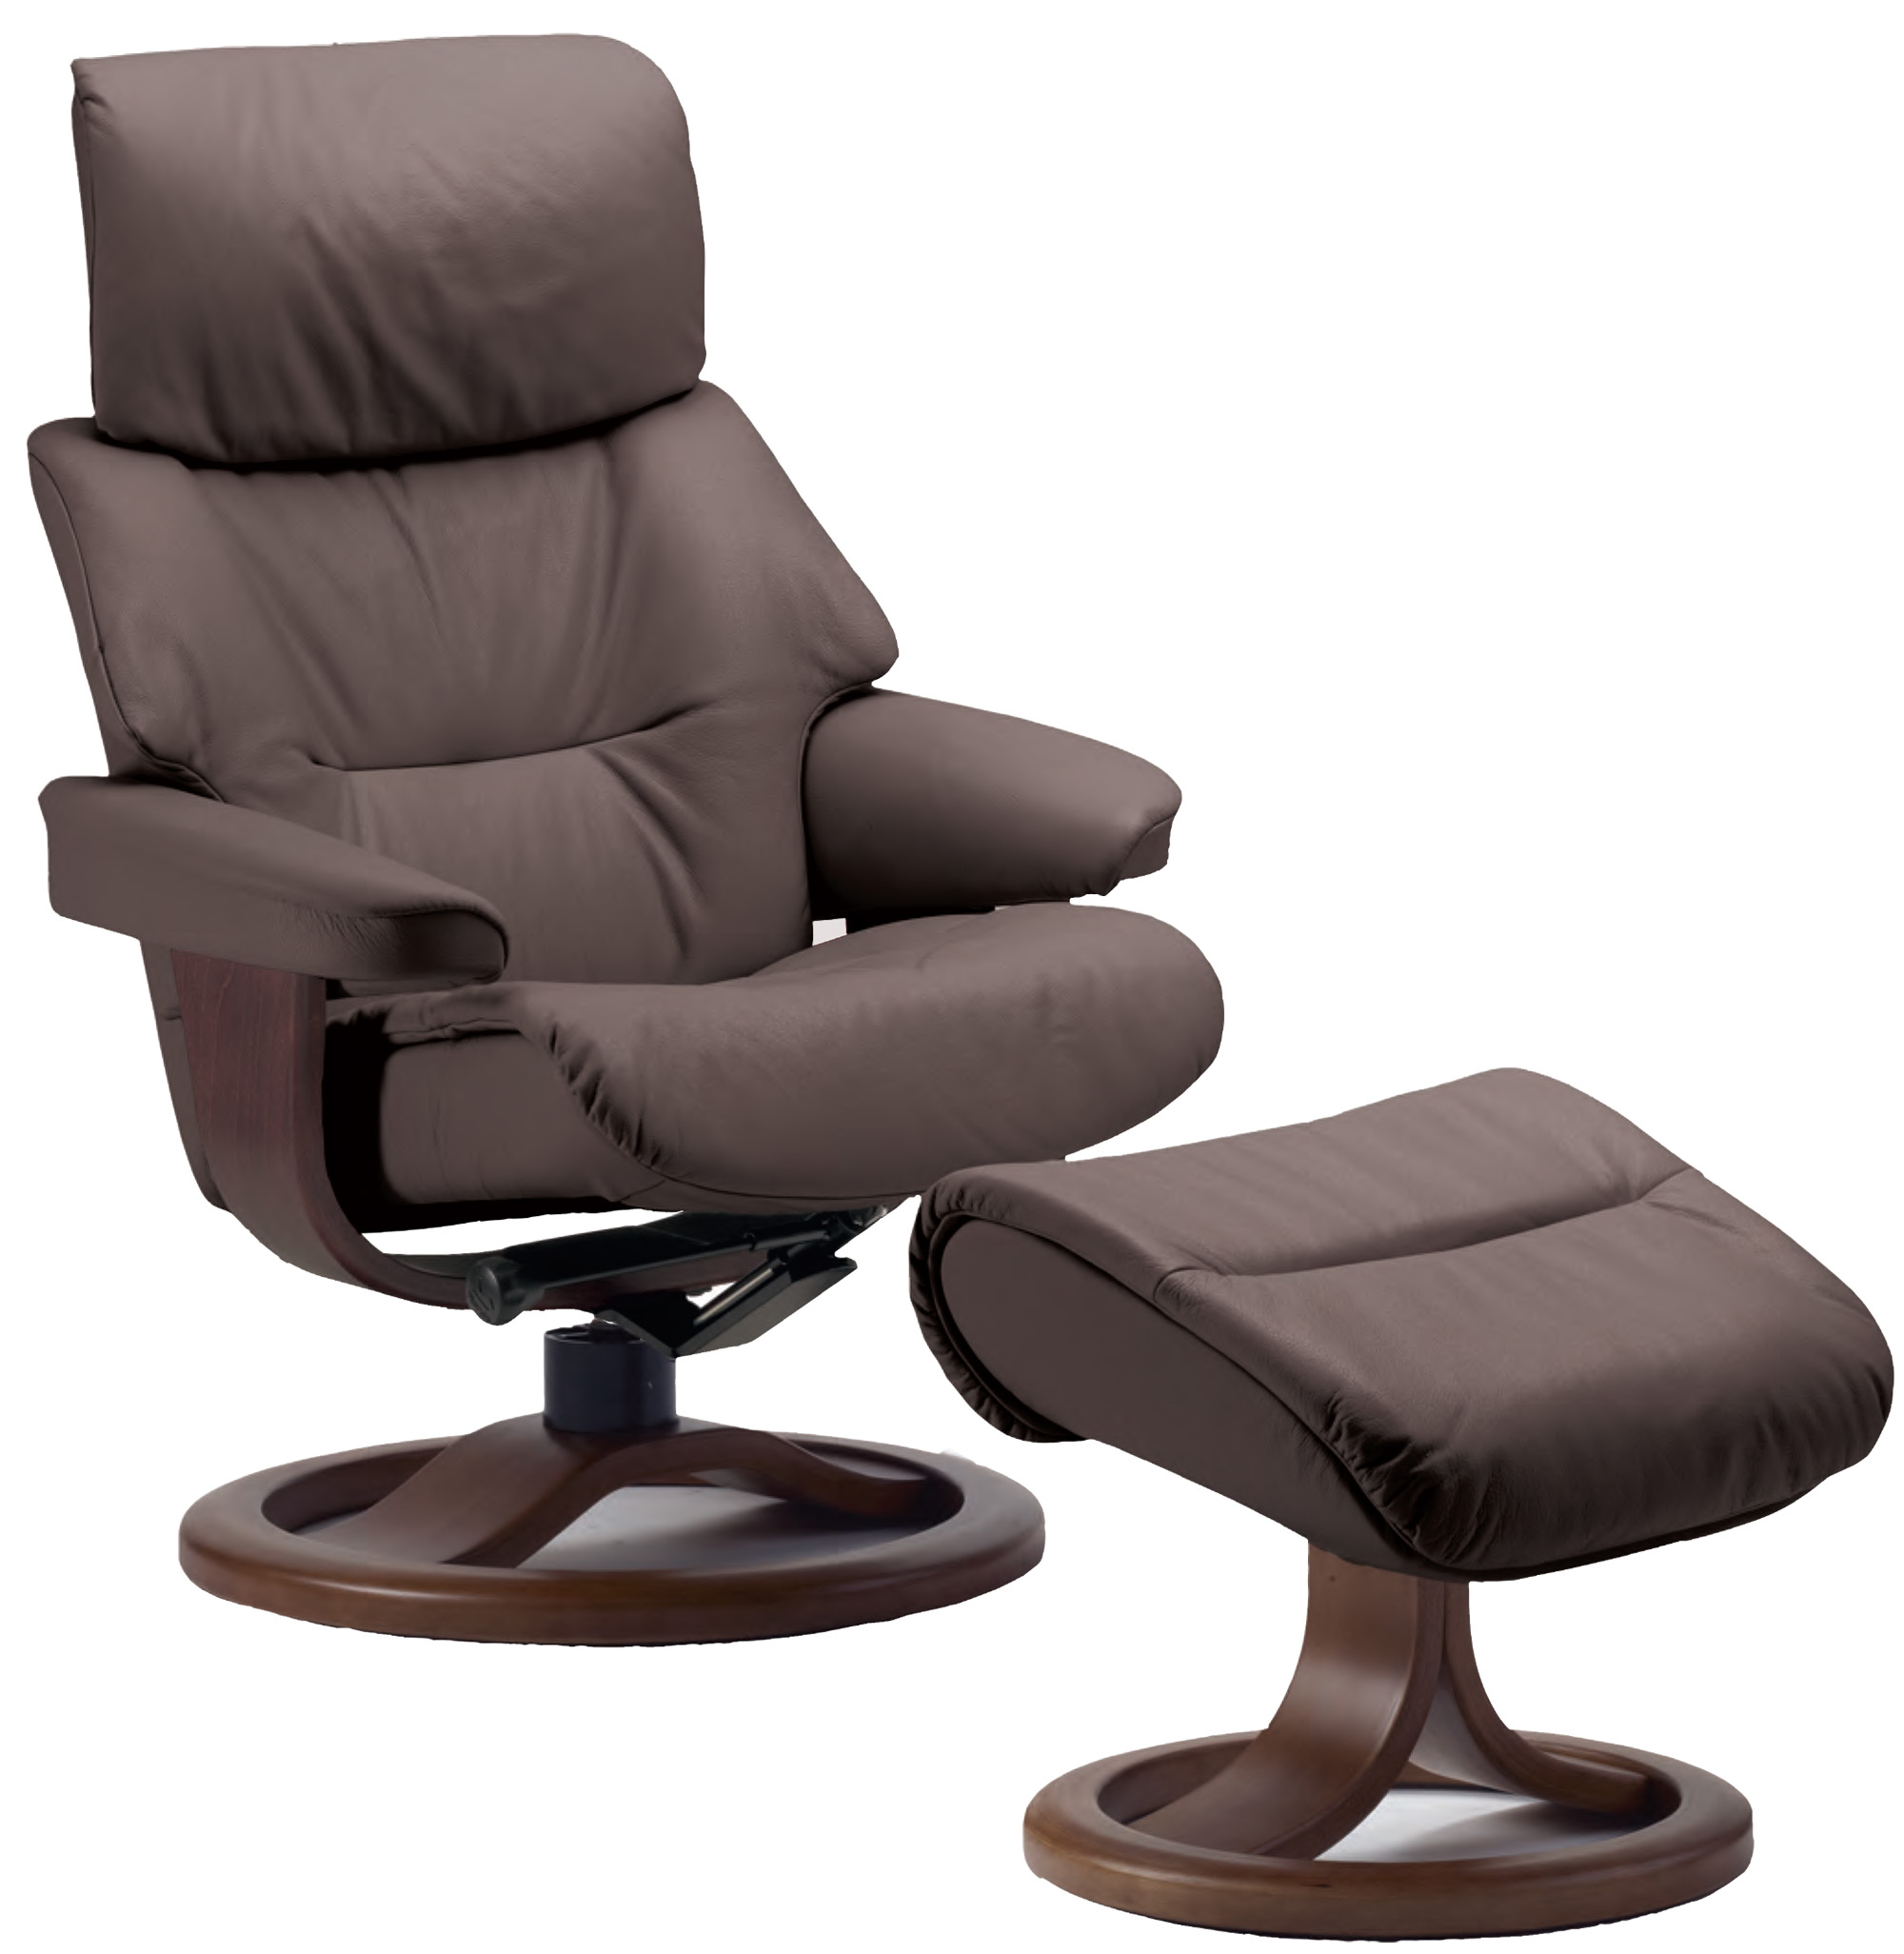 recliner oxford htm leather chair stressless paloma ekornes mayfair medium and cherry blue by